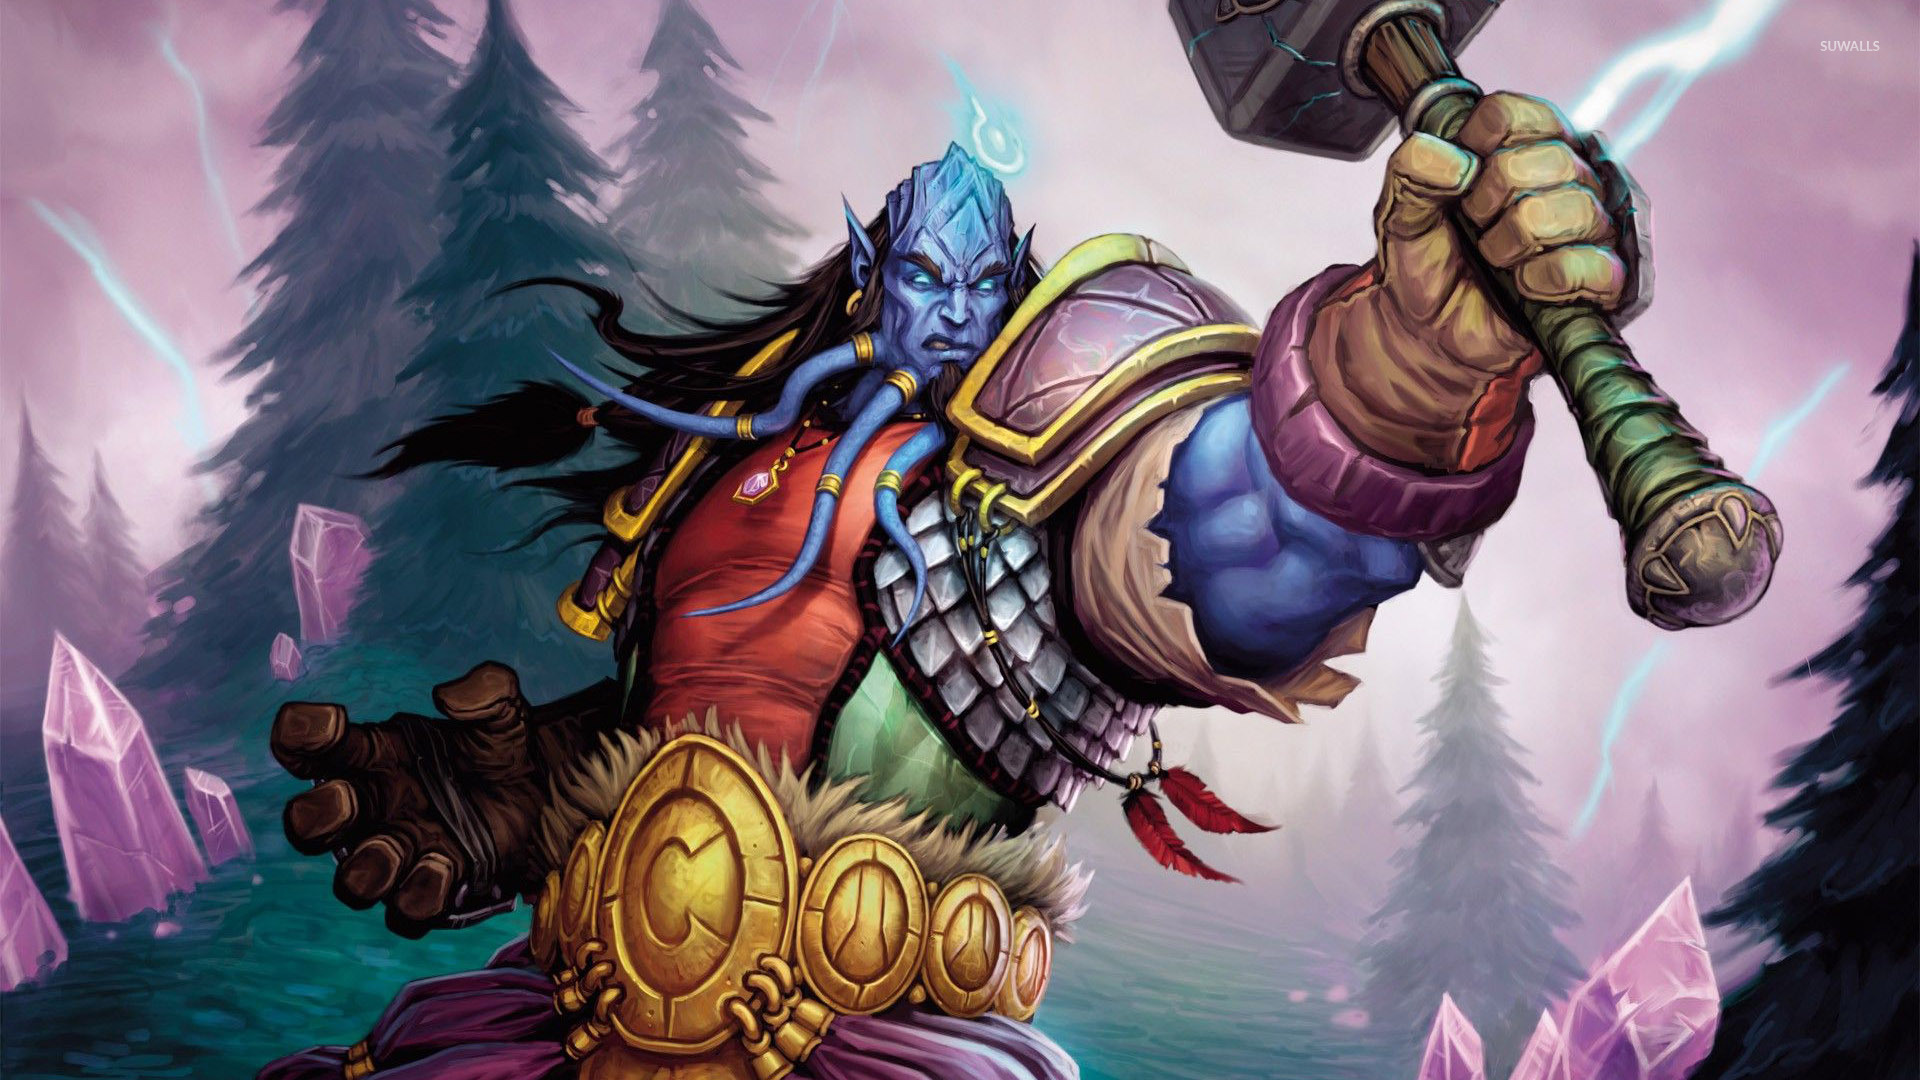 World of Warcraft wallpaper   Game wallpapers   29207 1920x1080